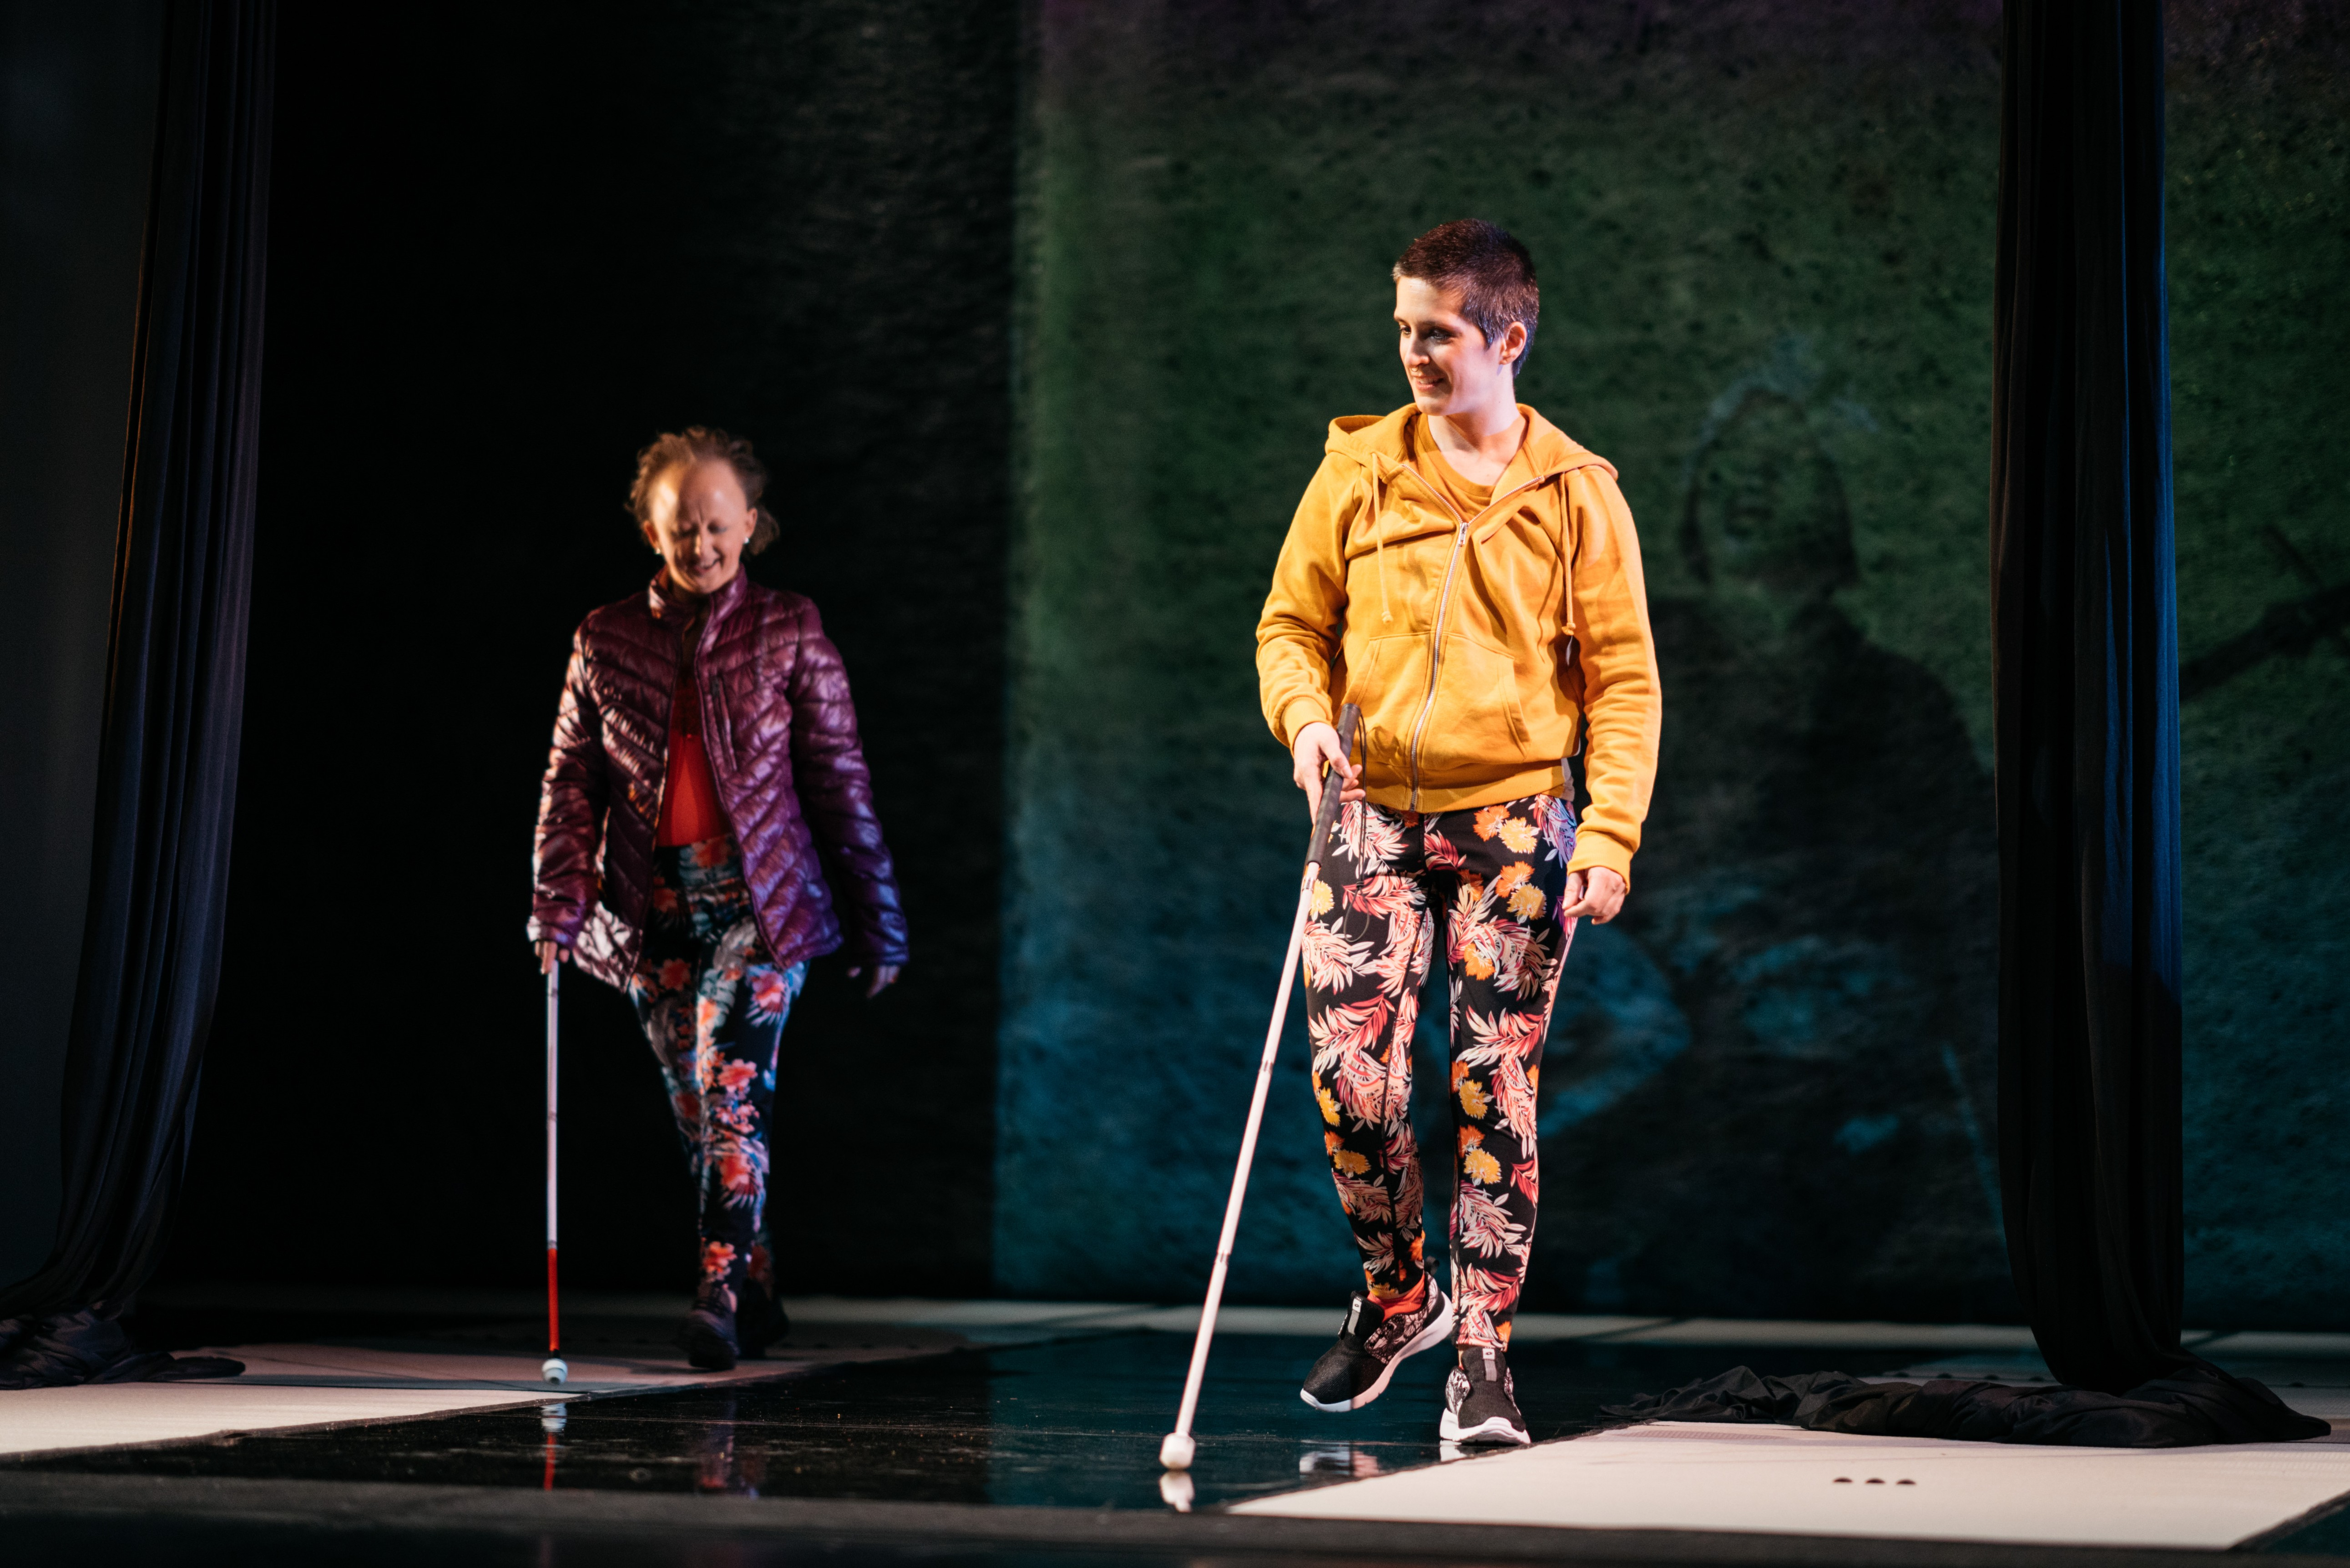 A full landscape shot of two white women walking onstage using white canes to guide them